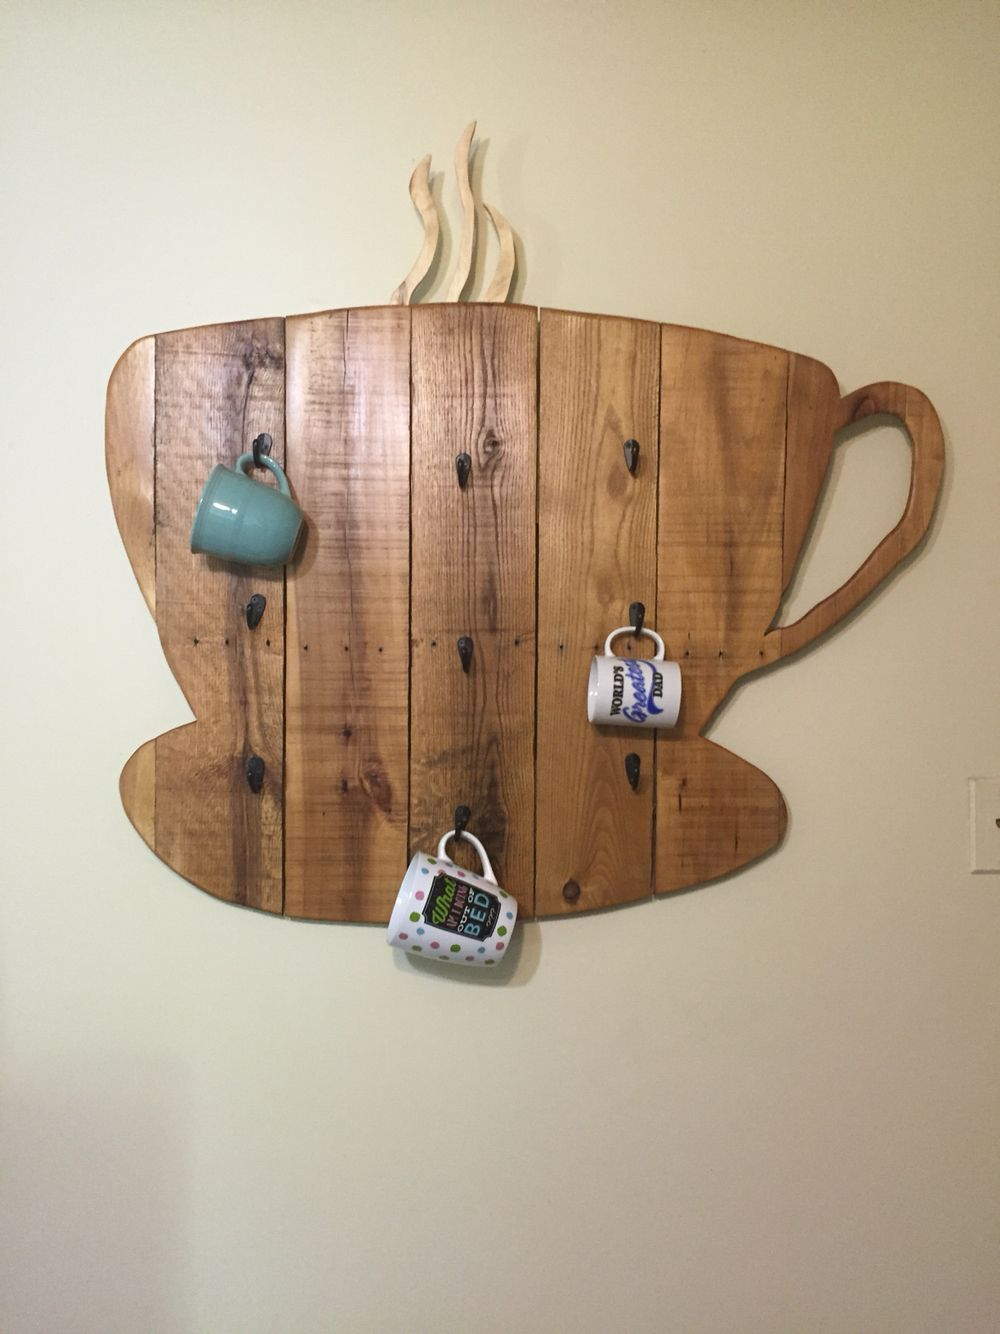 Coffee mug rack made from a pallet and stained with coffee